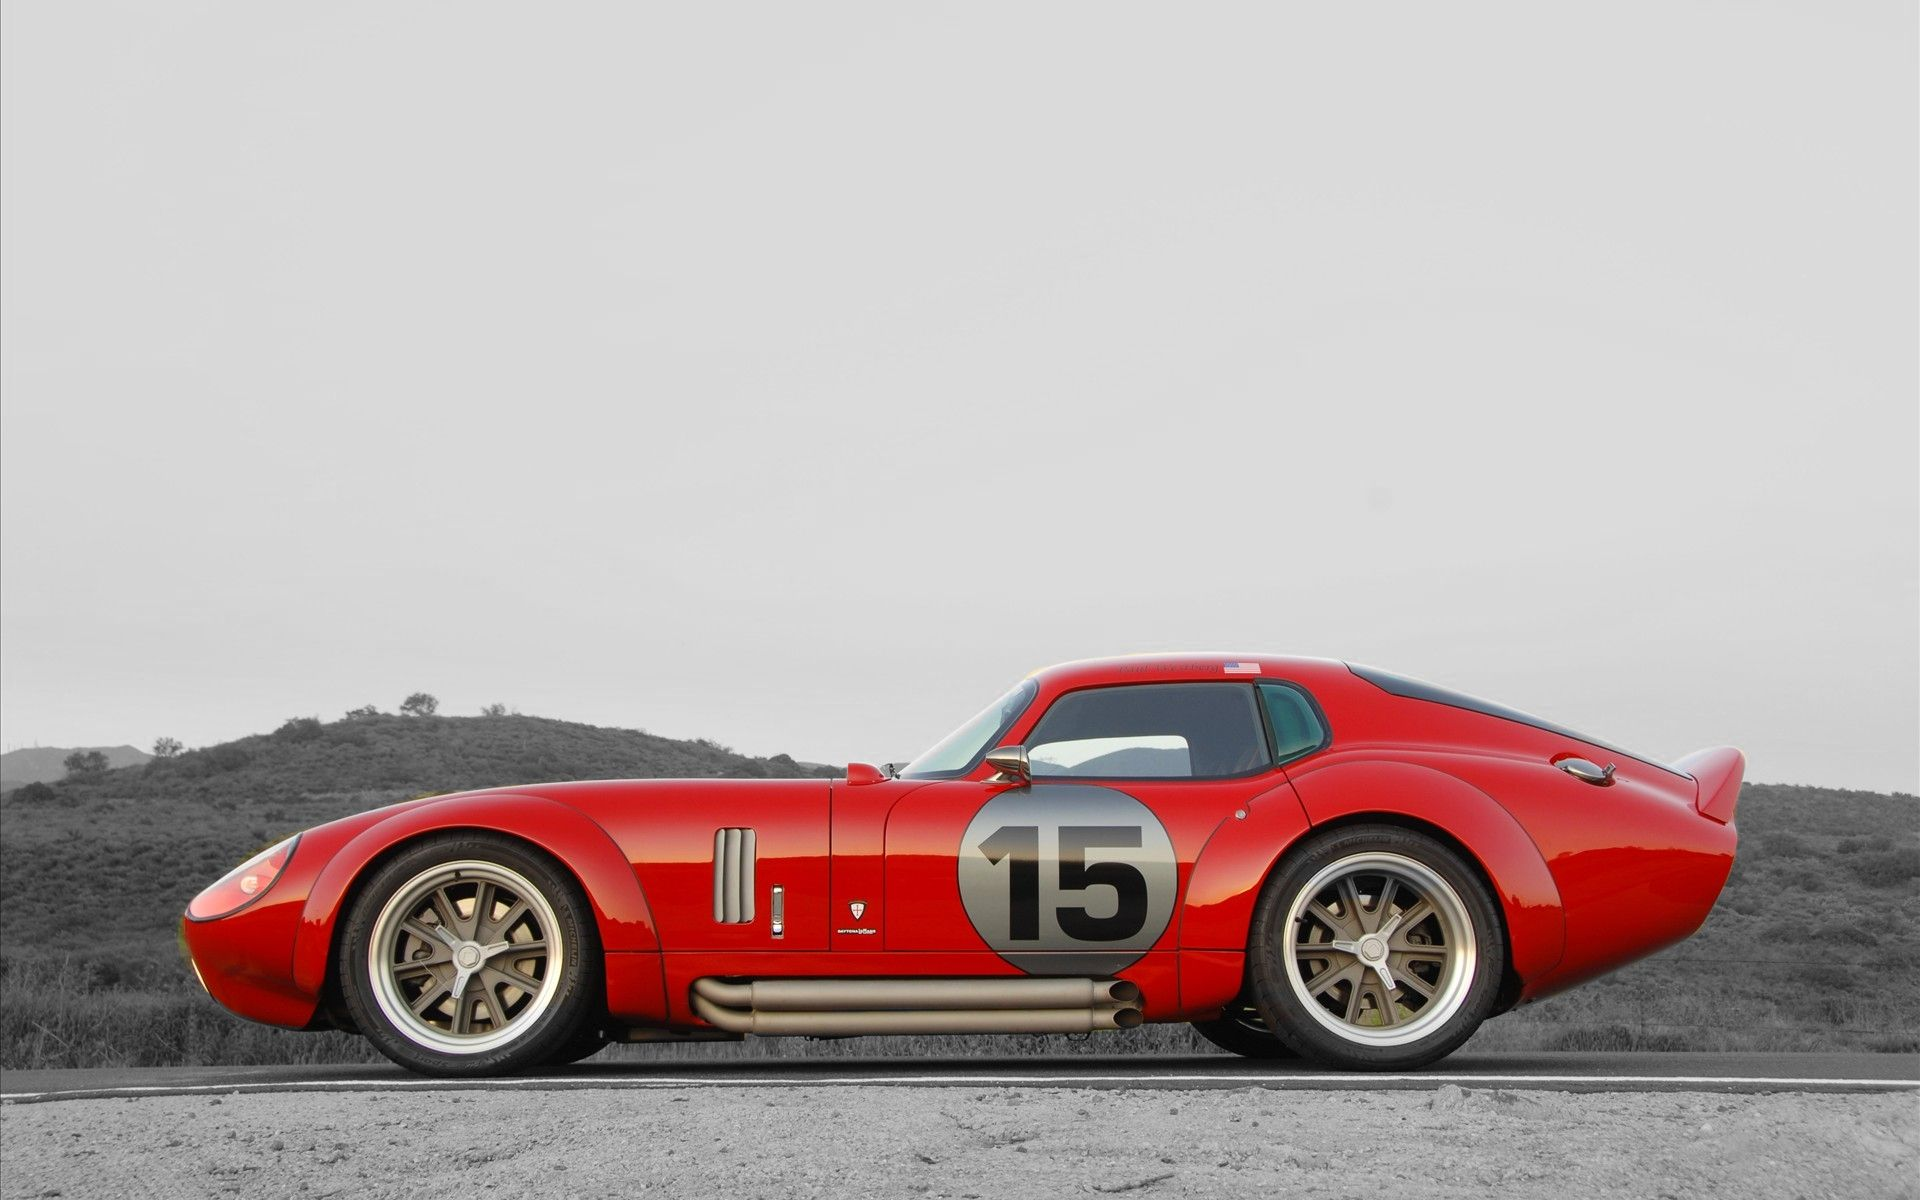 Red sports car side view hd pictures 4 hd wallpapers car blueprint oldtimer autos autos - Car side view wallpaper ...